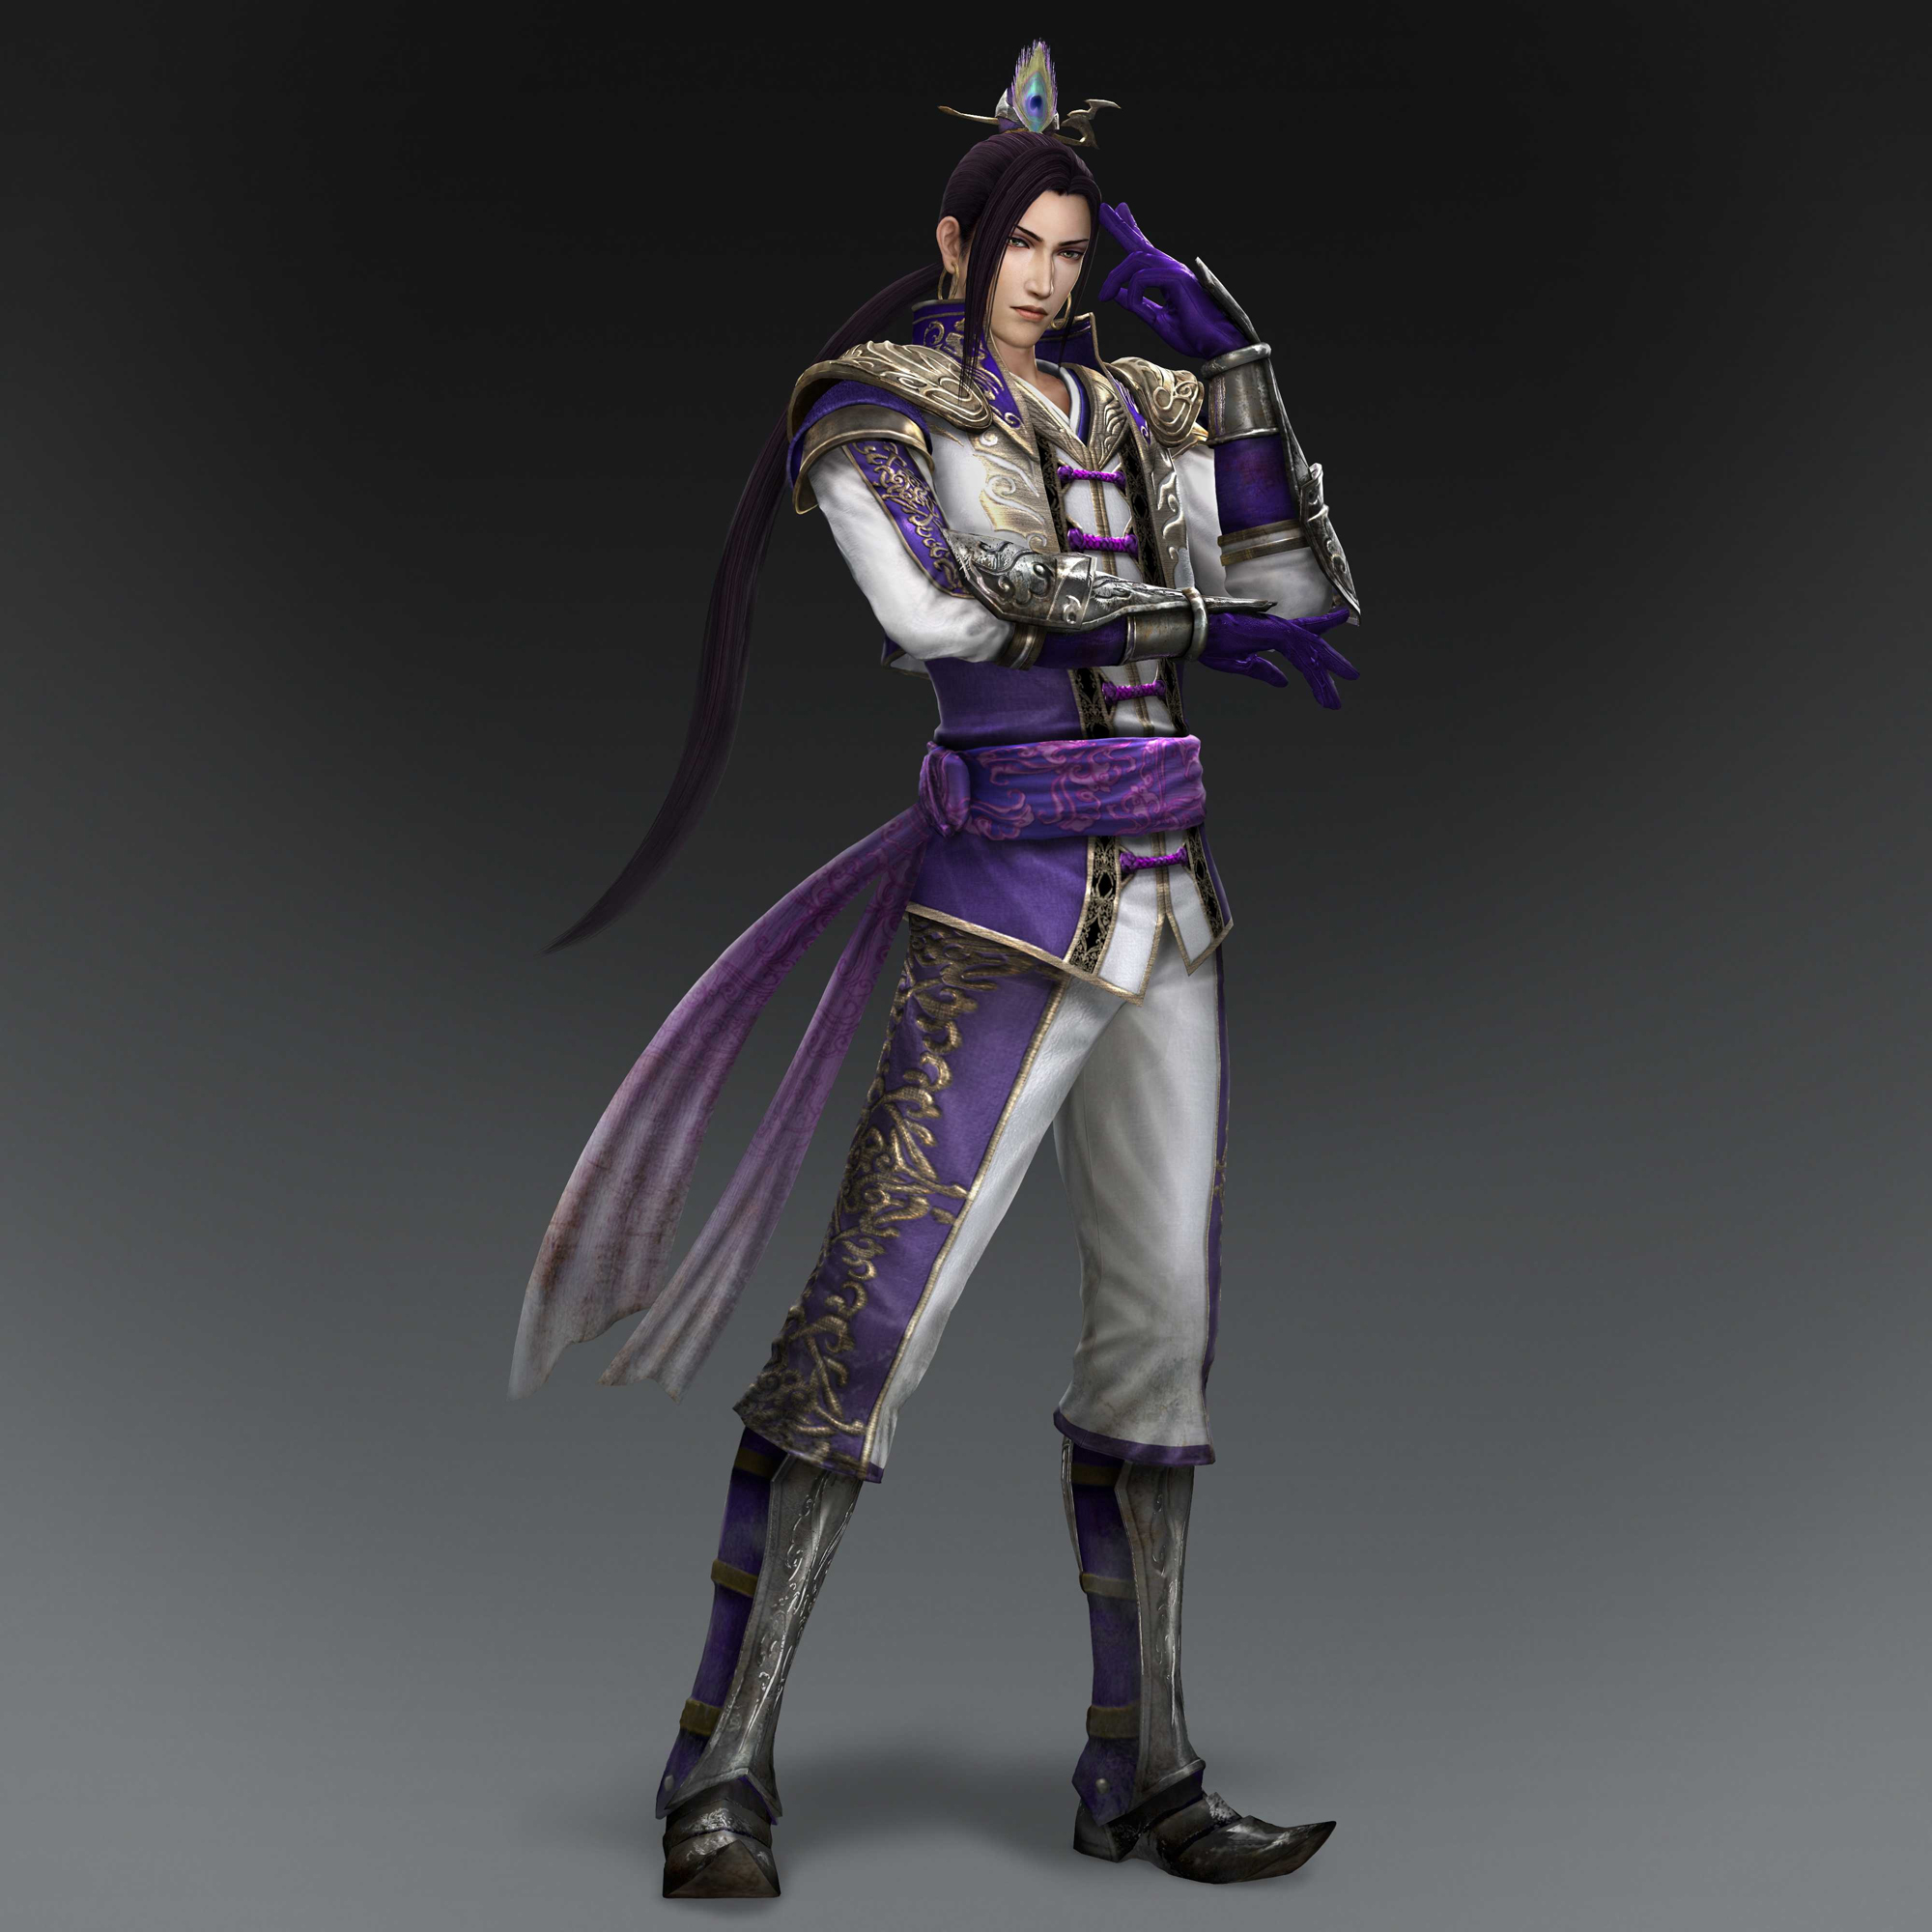 Dynasty Warriors 8: Xtreme Legends - 6 Star Weapons Guide